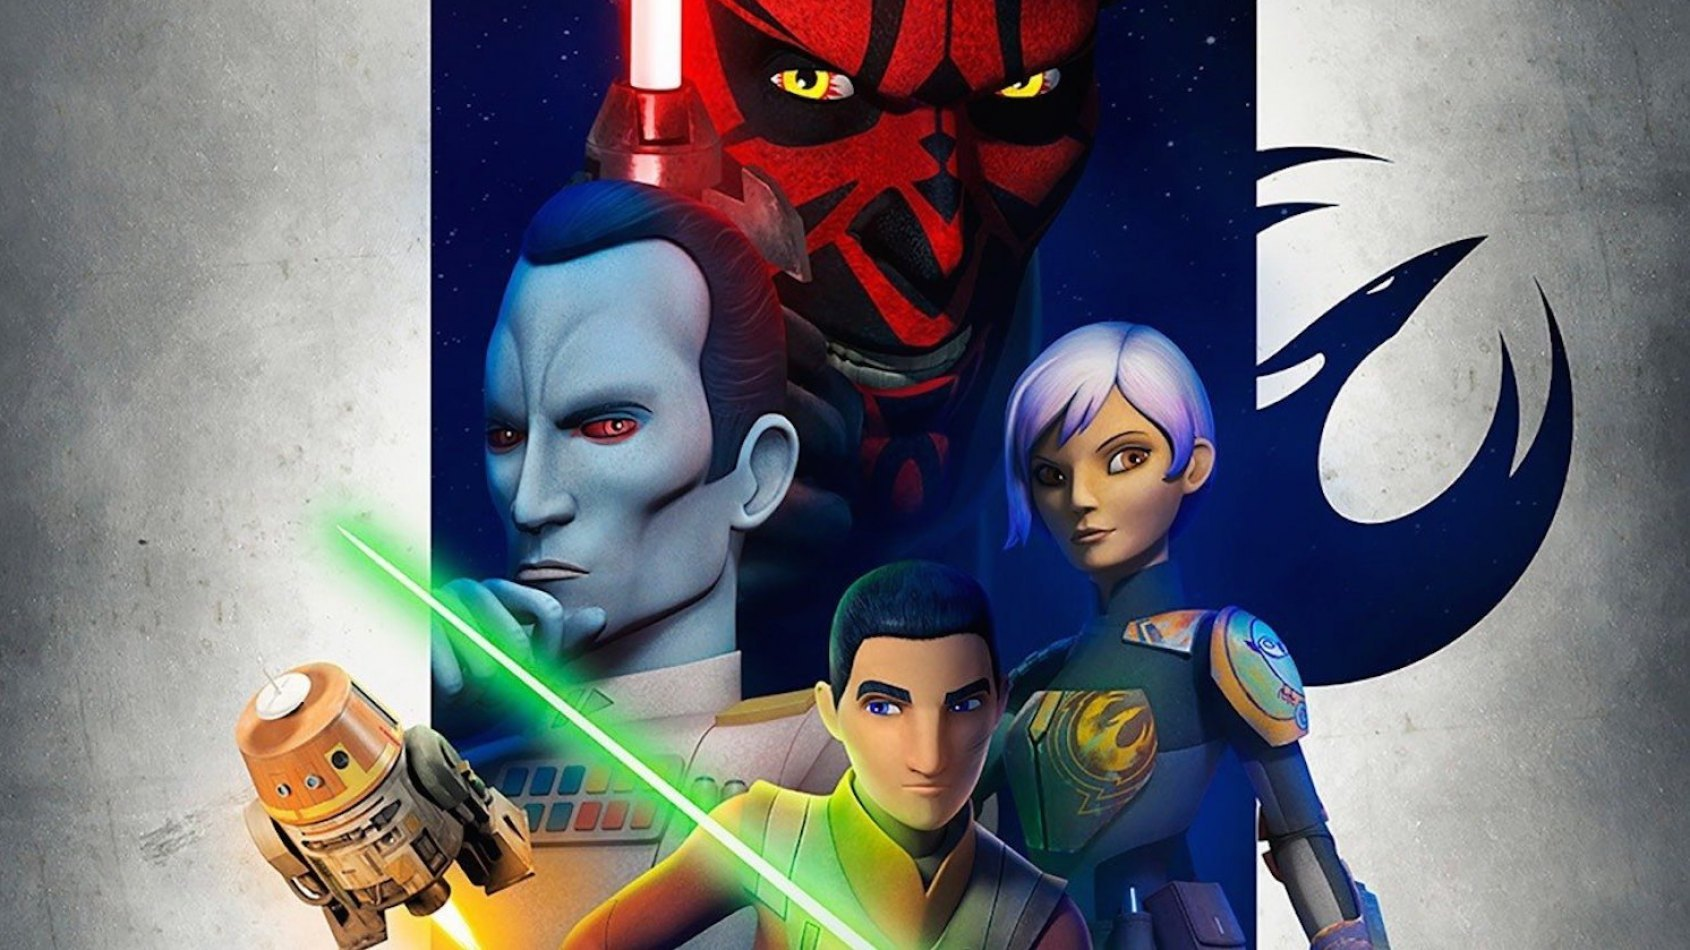 Description des personnages de Rebels saison 3